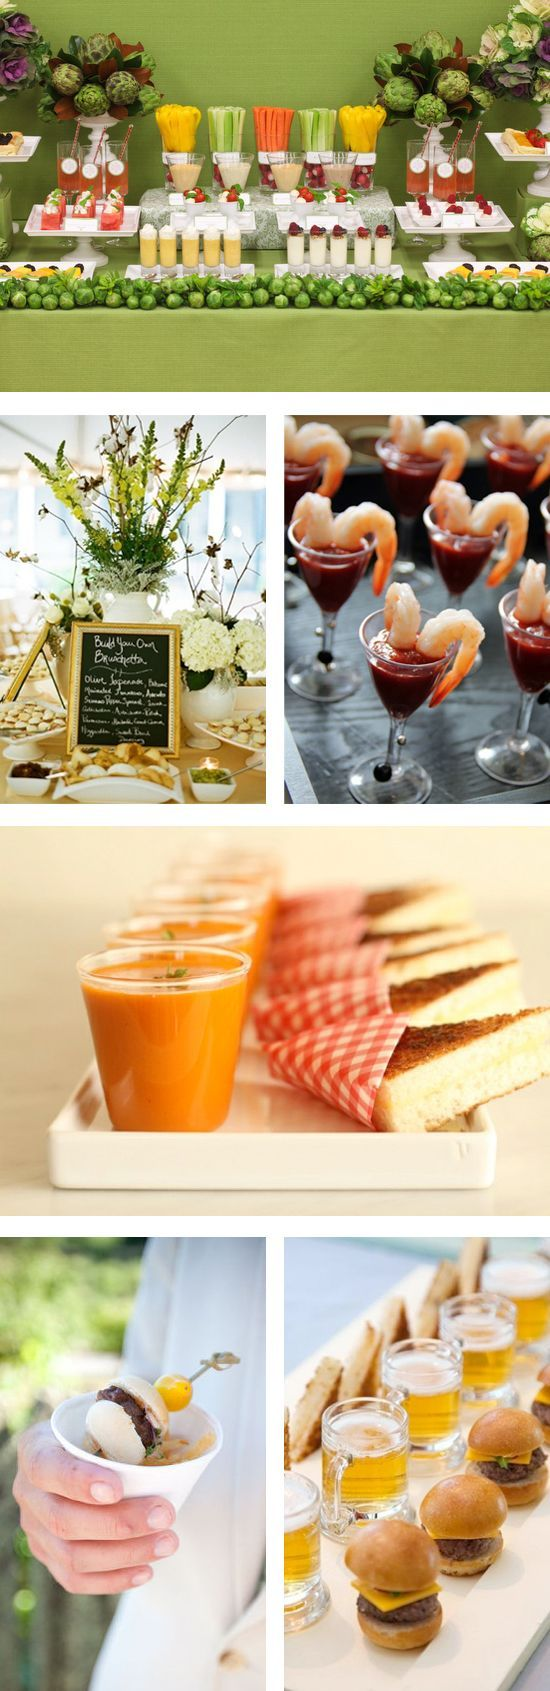 Food Stations Creative Food And Wedding Reception Ideas On Pinterest